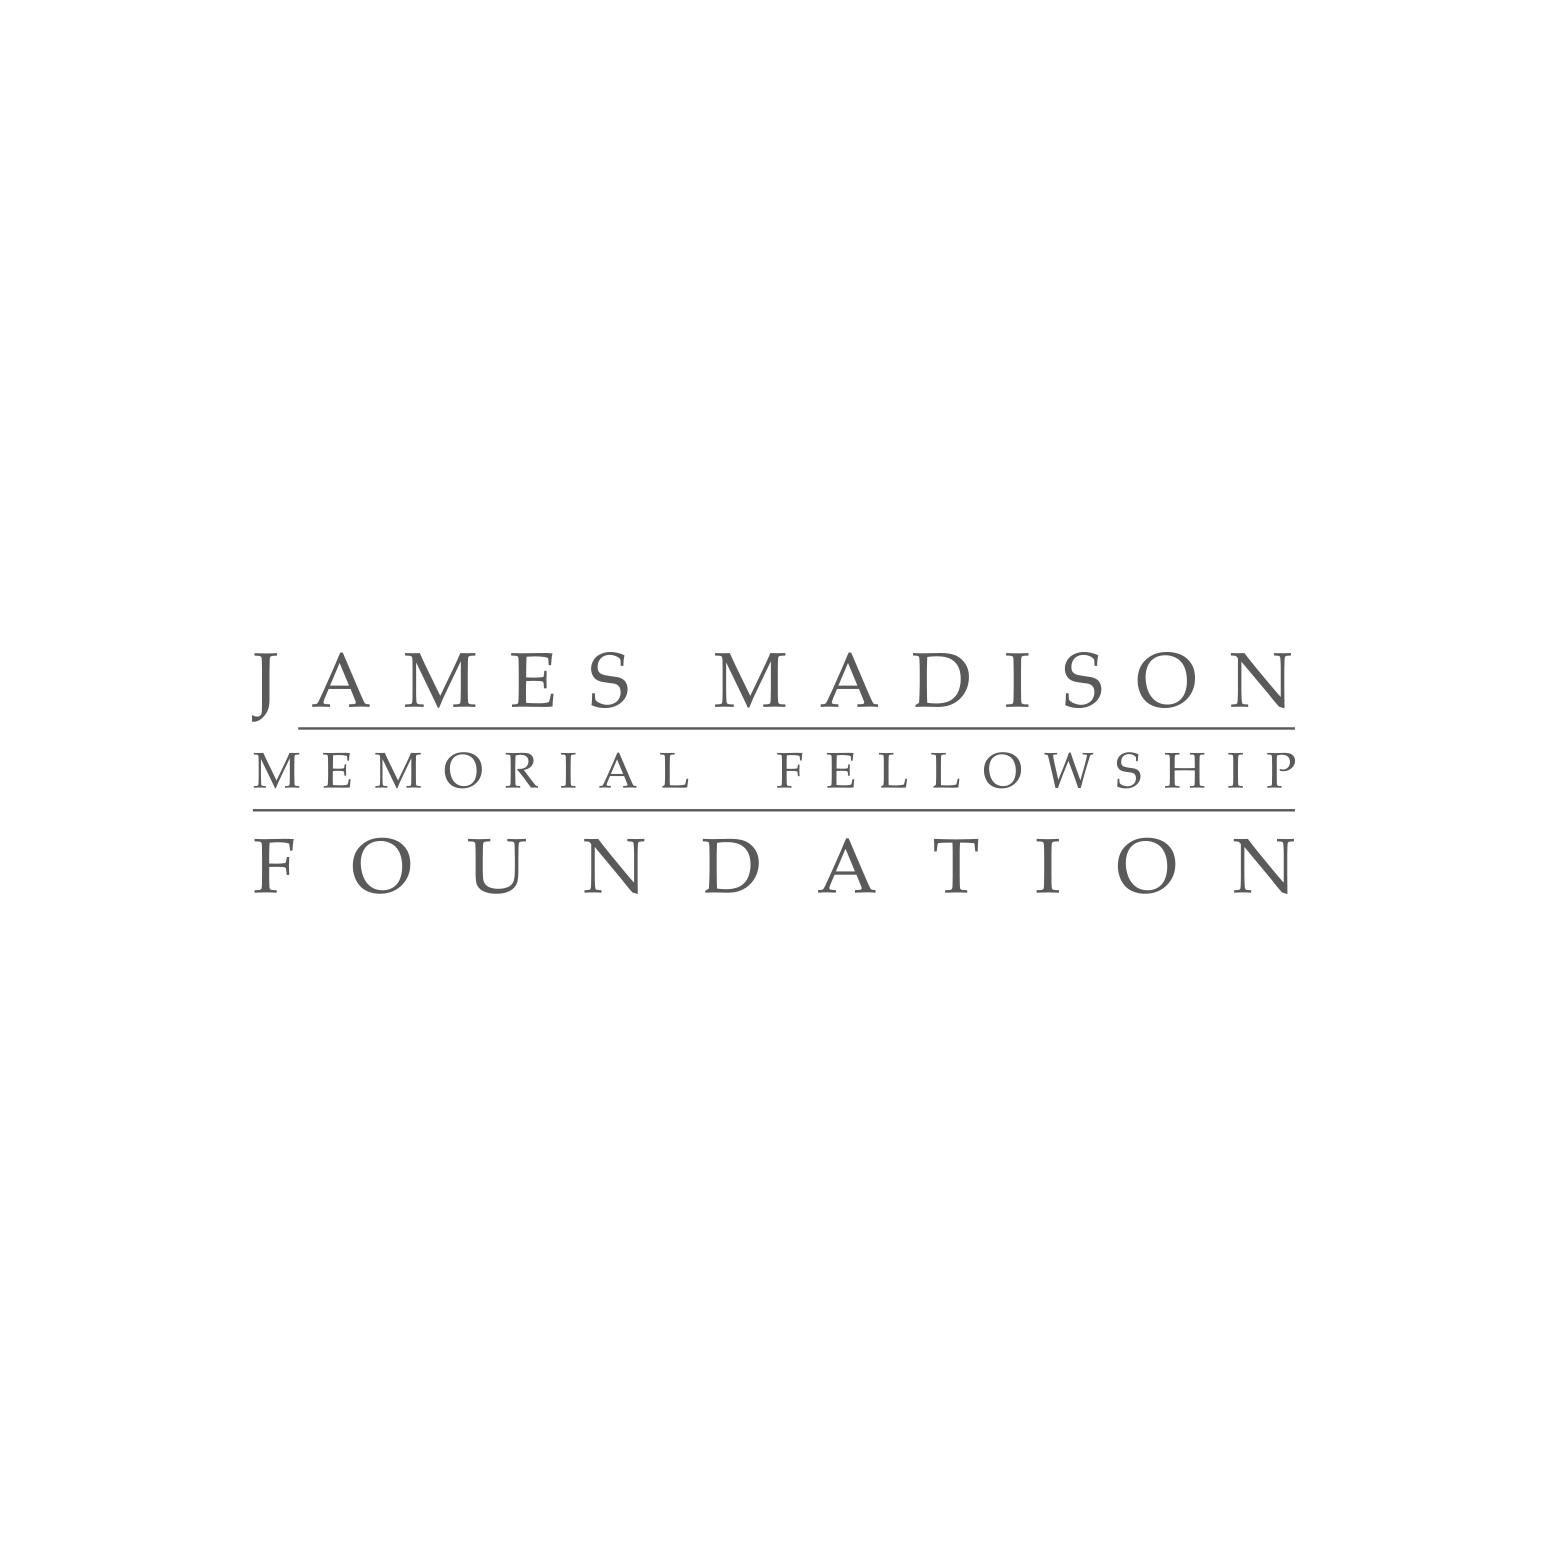 James Madison Memorial Fellowship Foundation